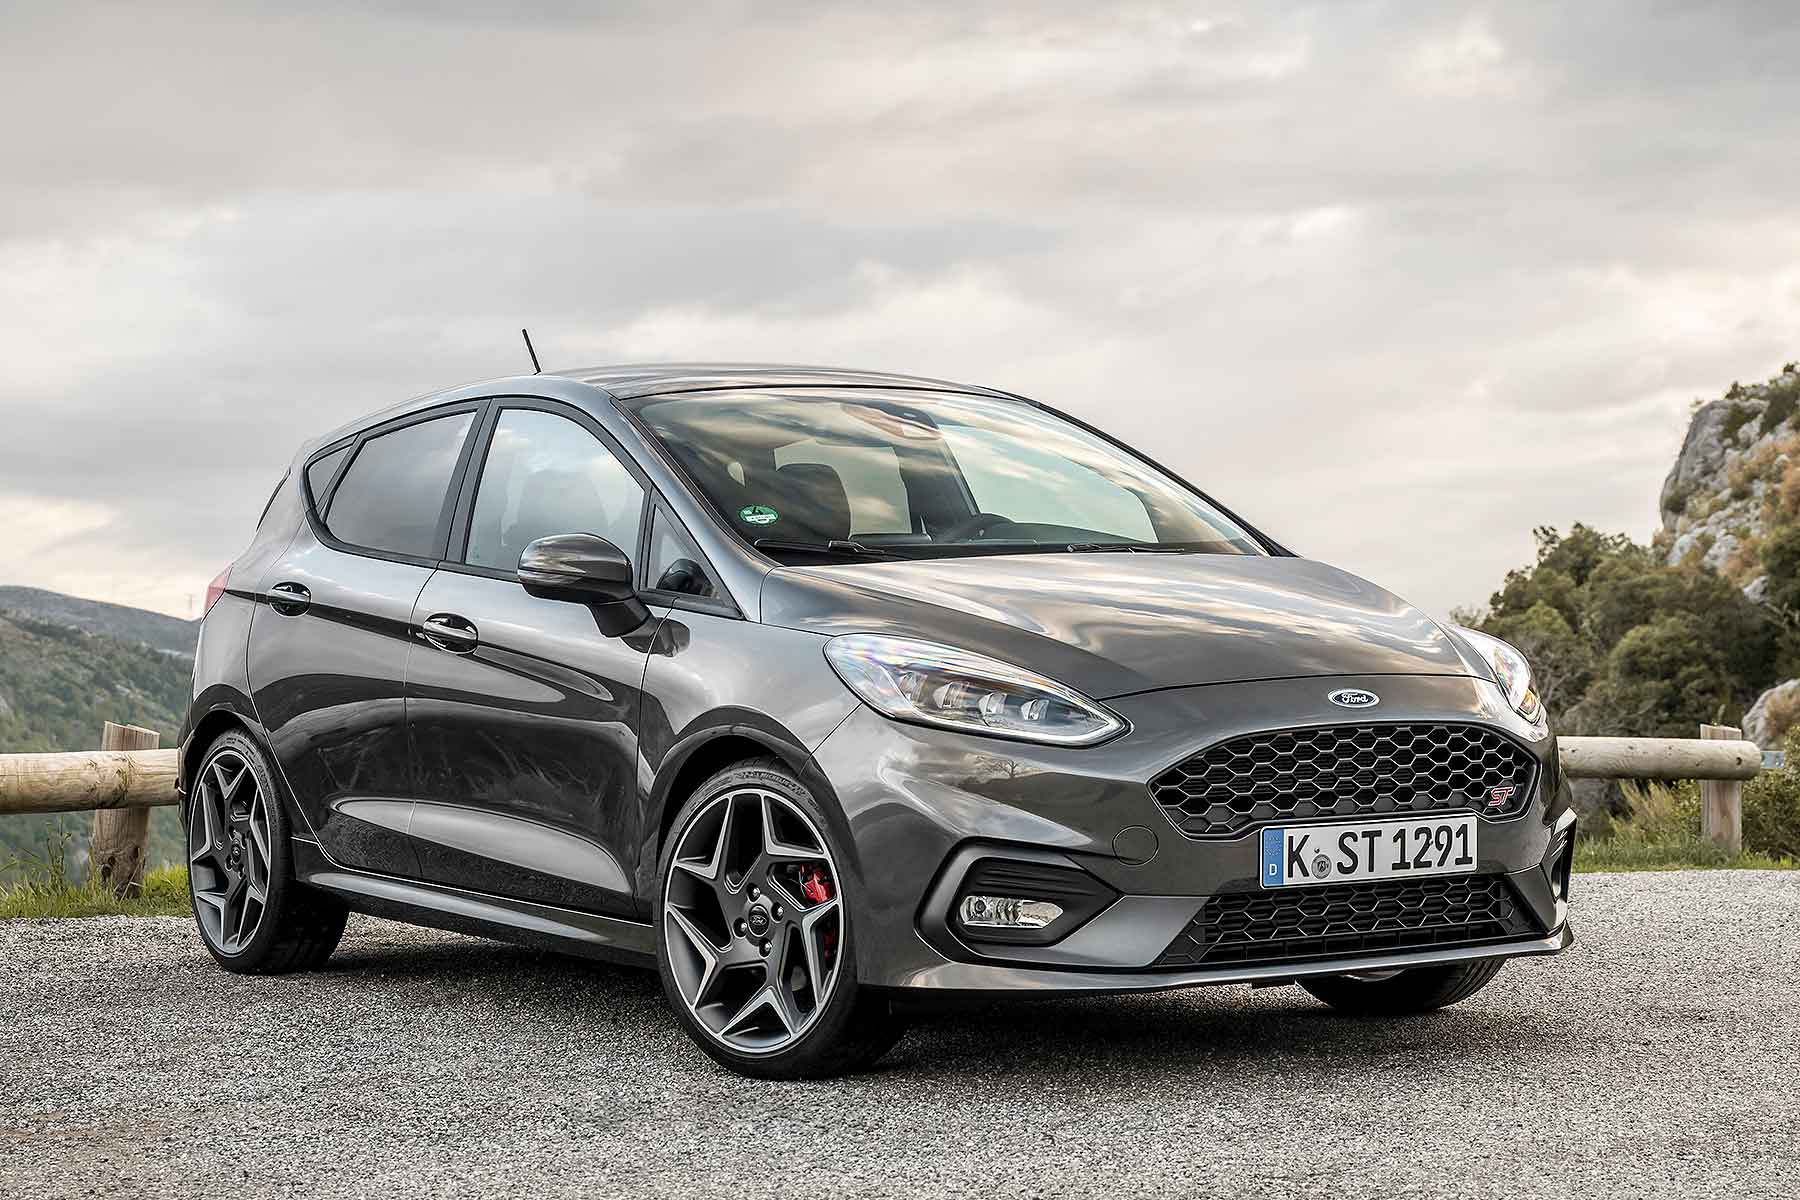 2018 ford fiesta st priced from just 18 995 motoring research. Black Bedroom Furniture Sets. Home Design Ideas